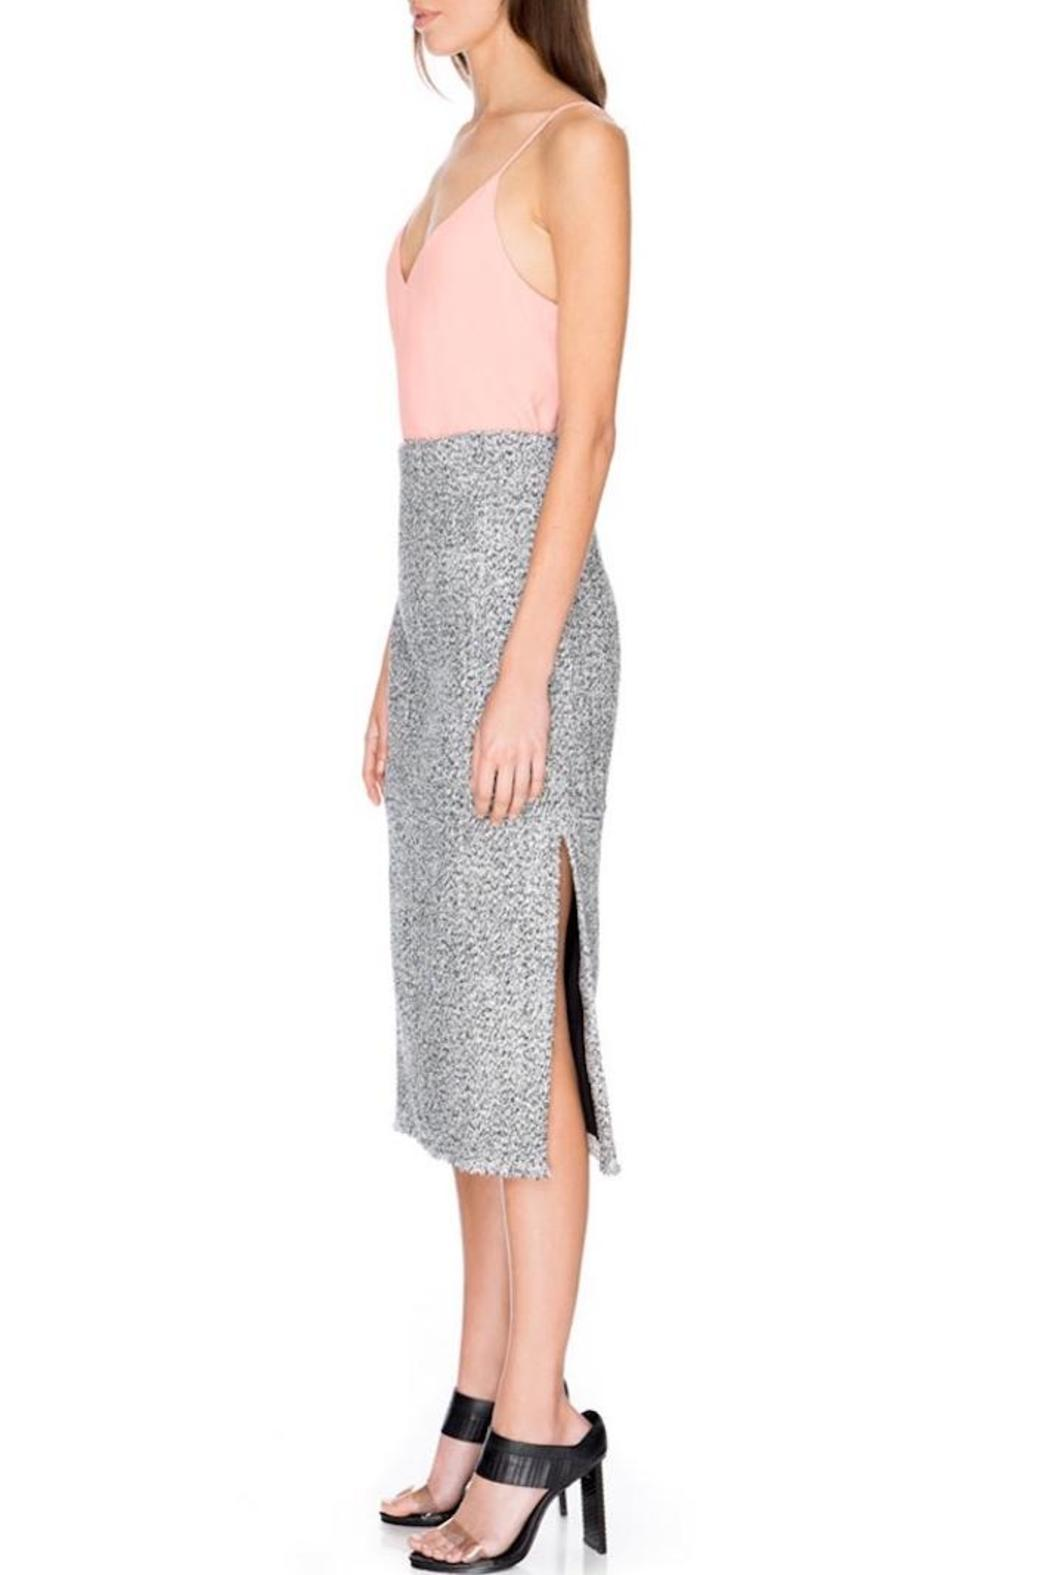 c meo collective metallic pencil skirt from queensland by